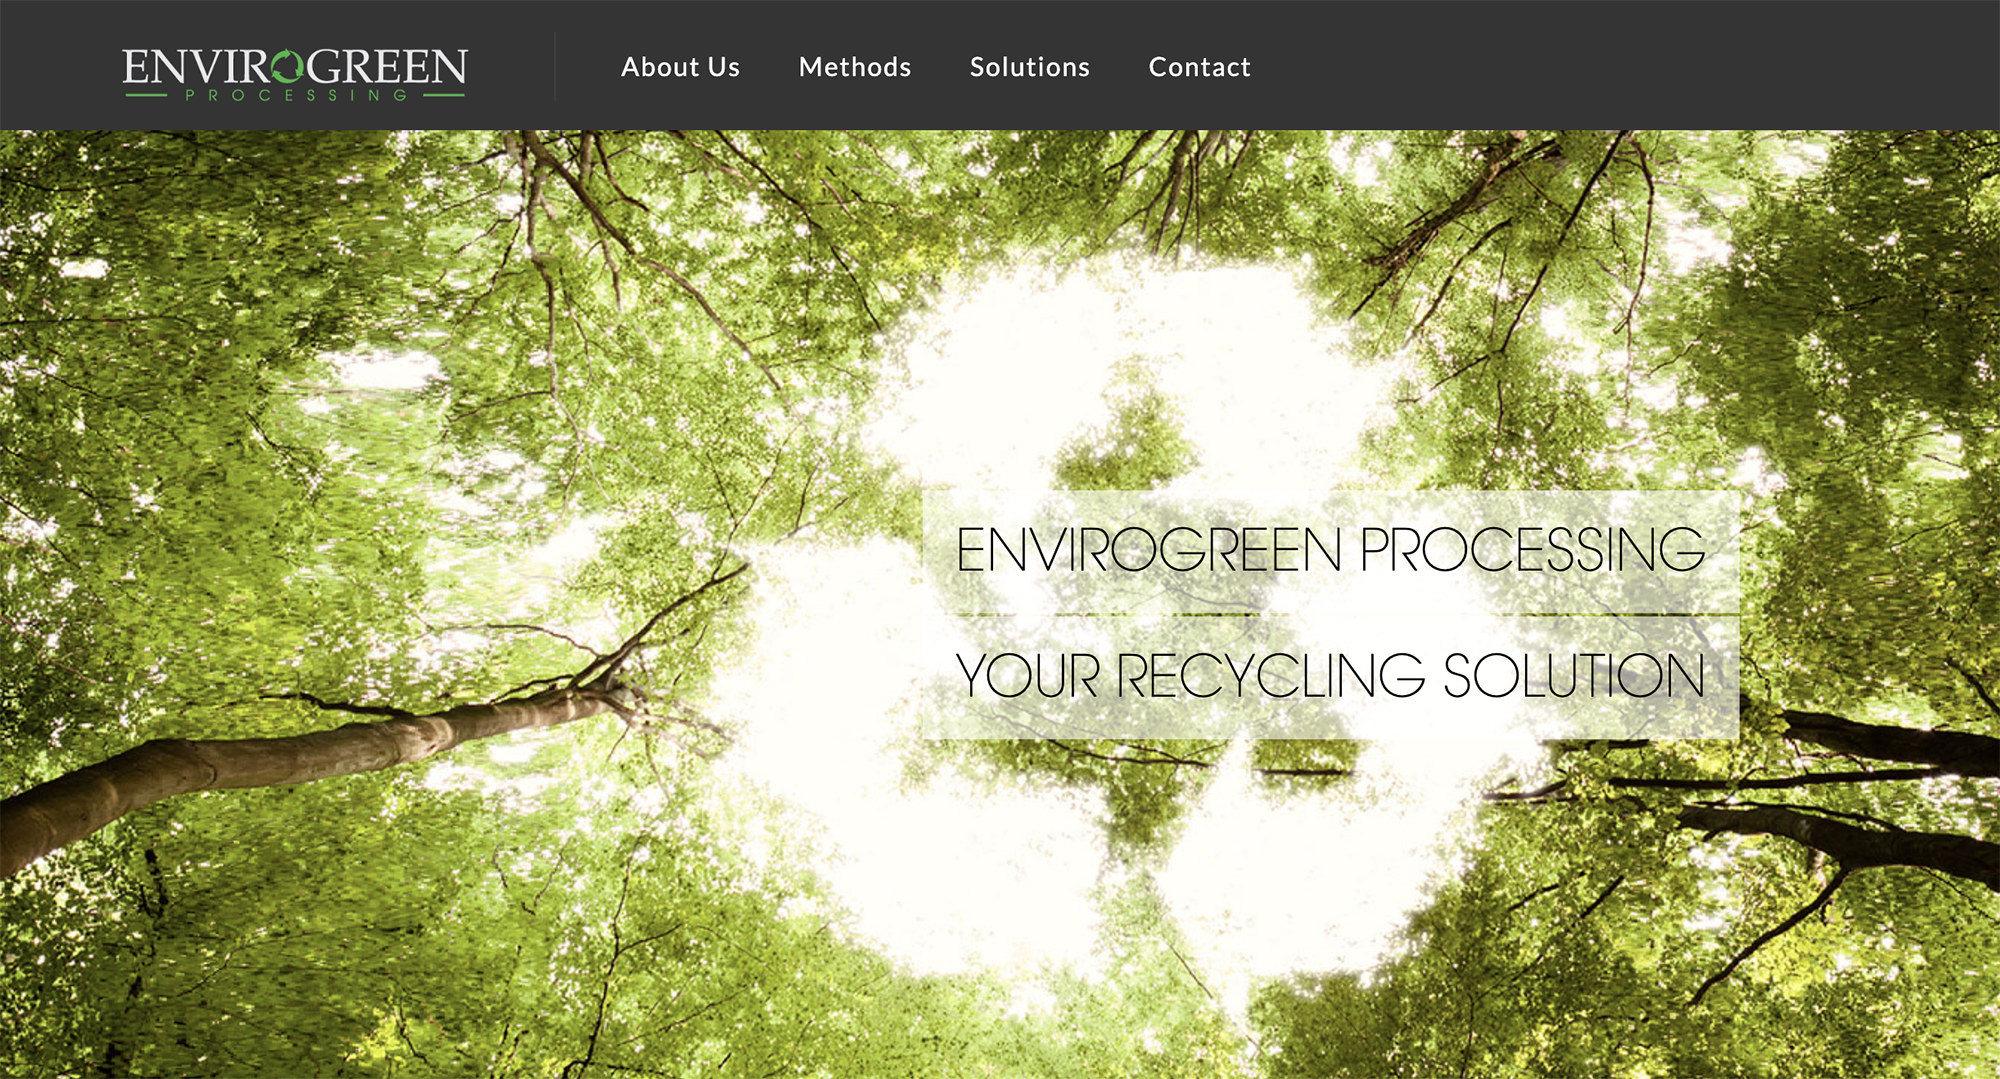 This is a picture of EnviroGreen Processing's website.